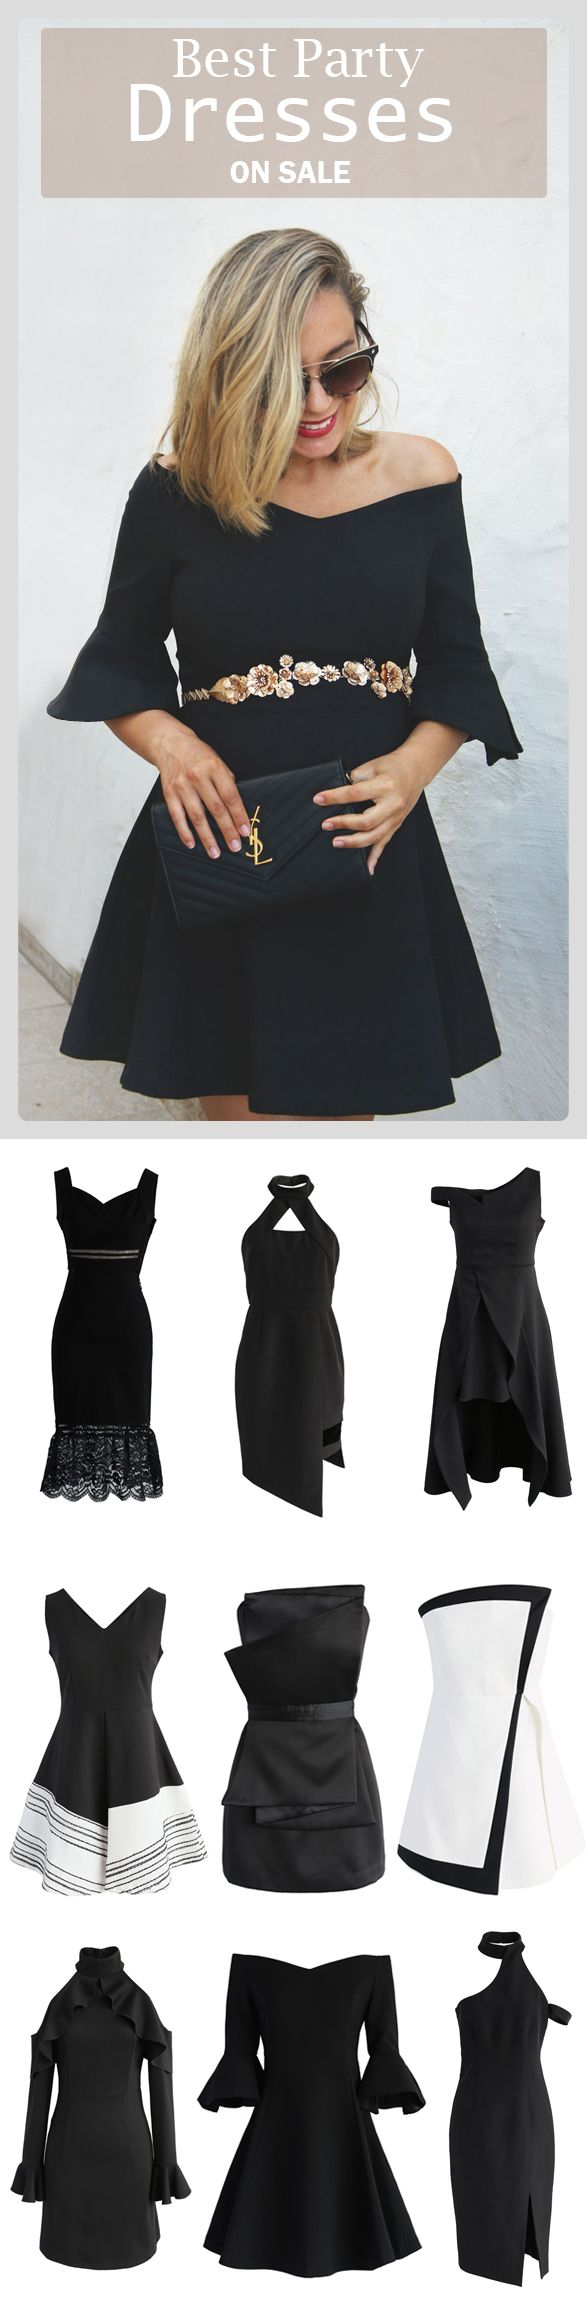 Extra 20% off Storewide  Code: THX20  Ends Nov.10th  Find the cutest party dresses at Chicwish.com Simple Elegance Off-shoulder Dress featured by myshowroomblog